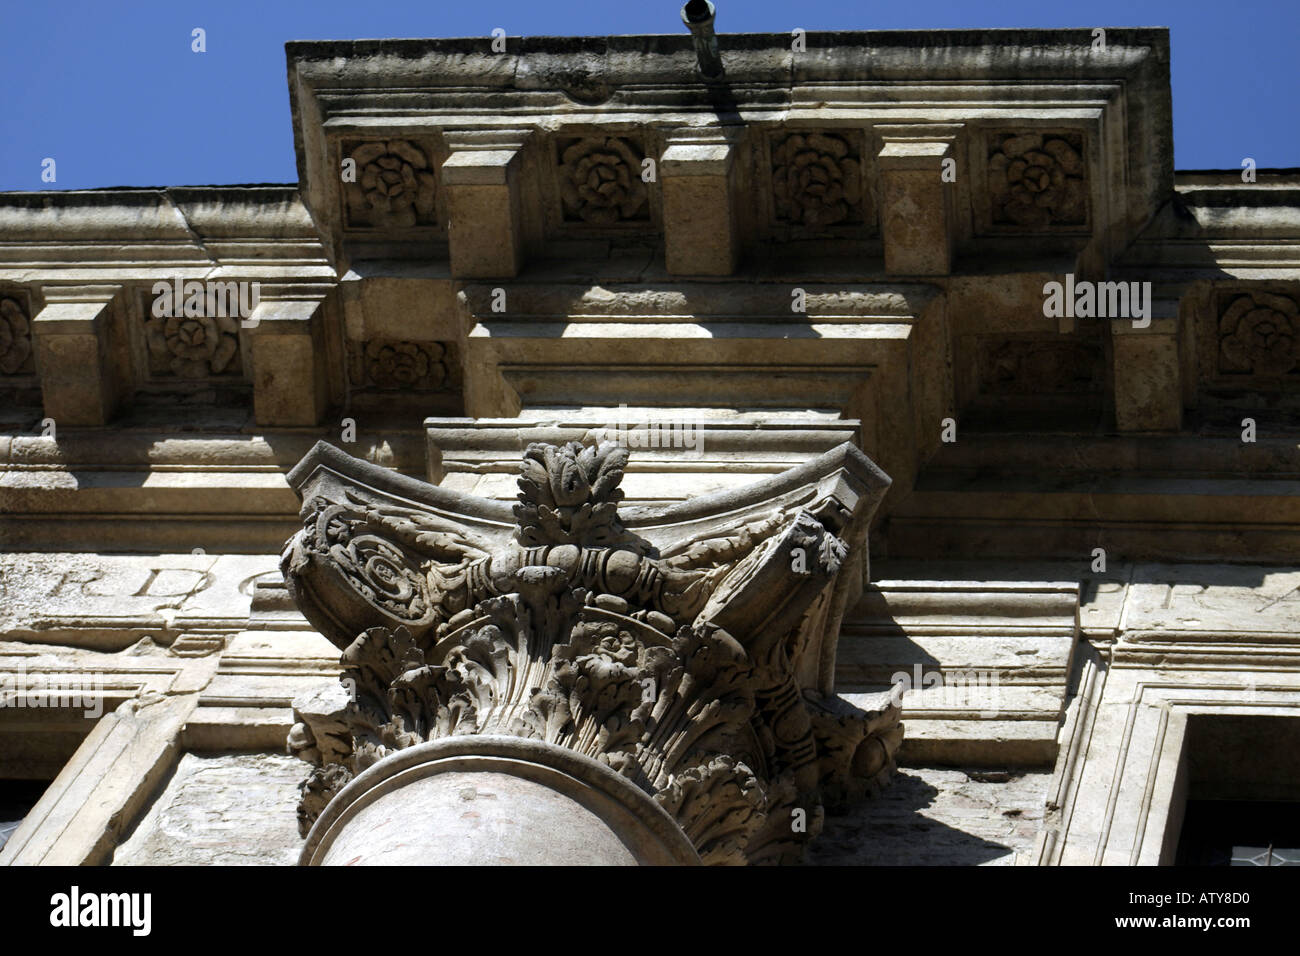 Entablature and column architectural detail on the Loggia del Capitaniato by Palladio Vicenza Italy - Stock Image